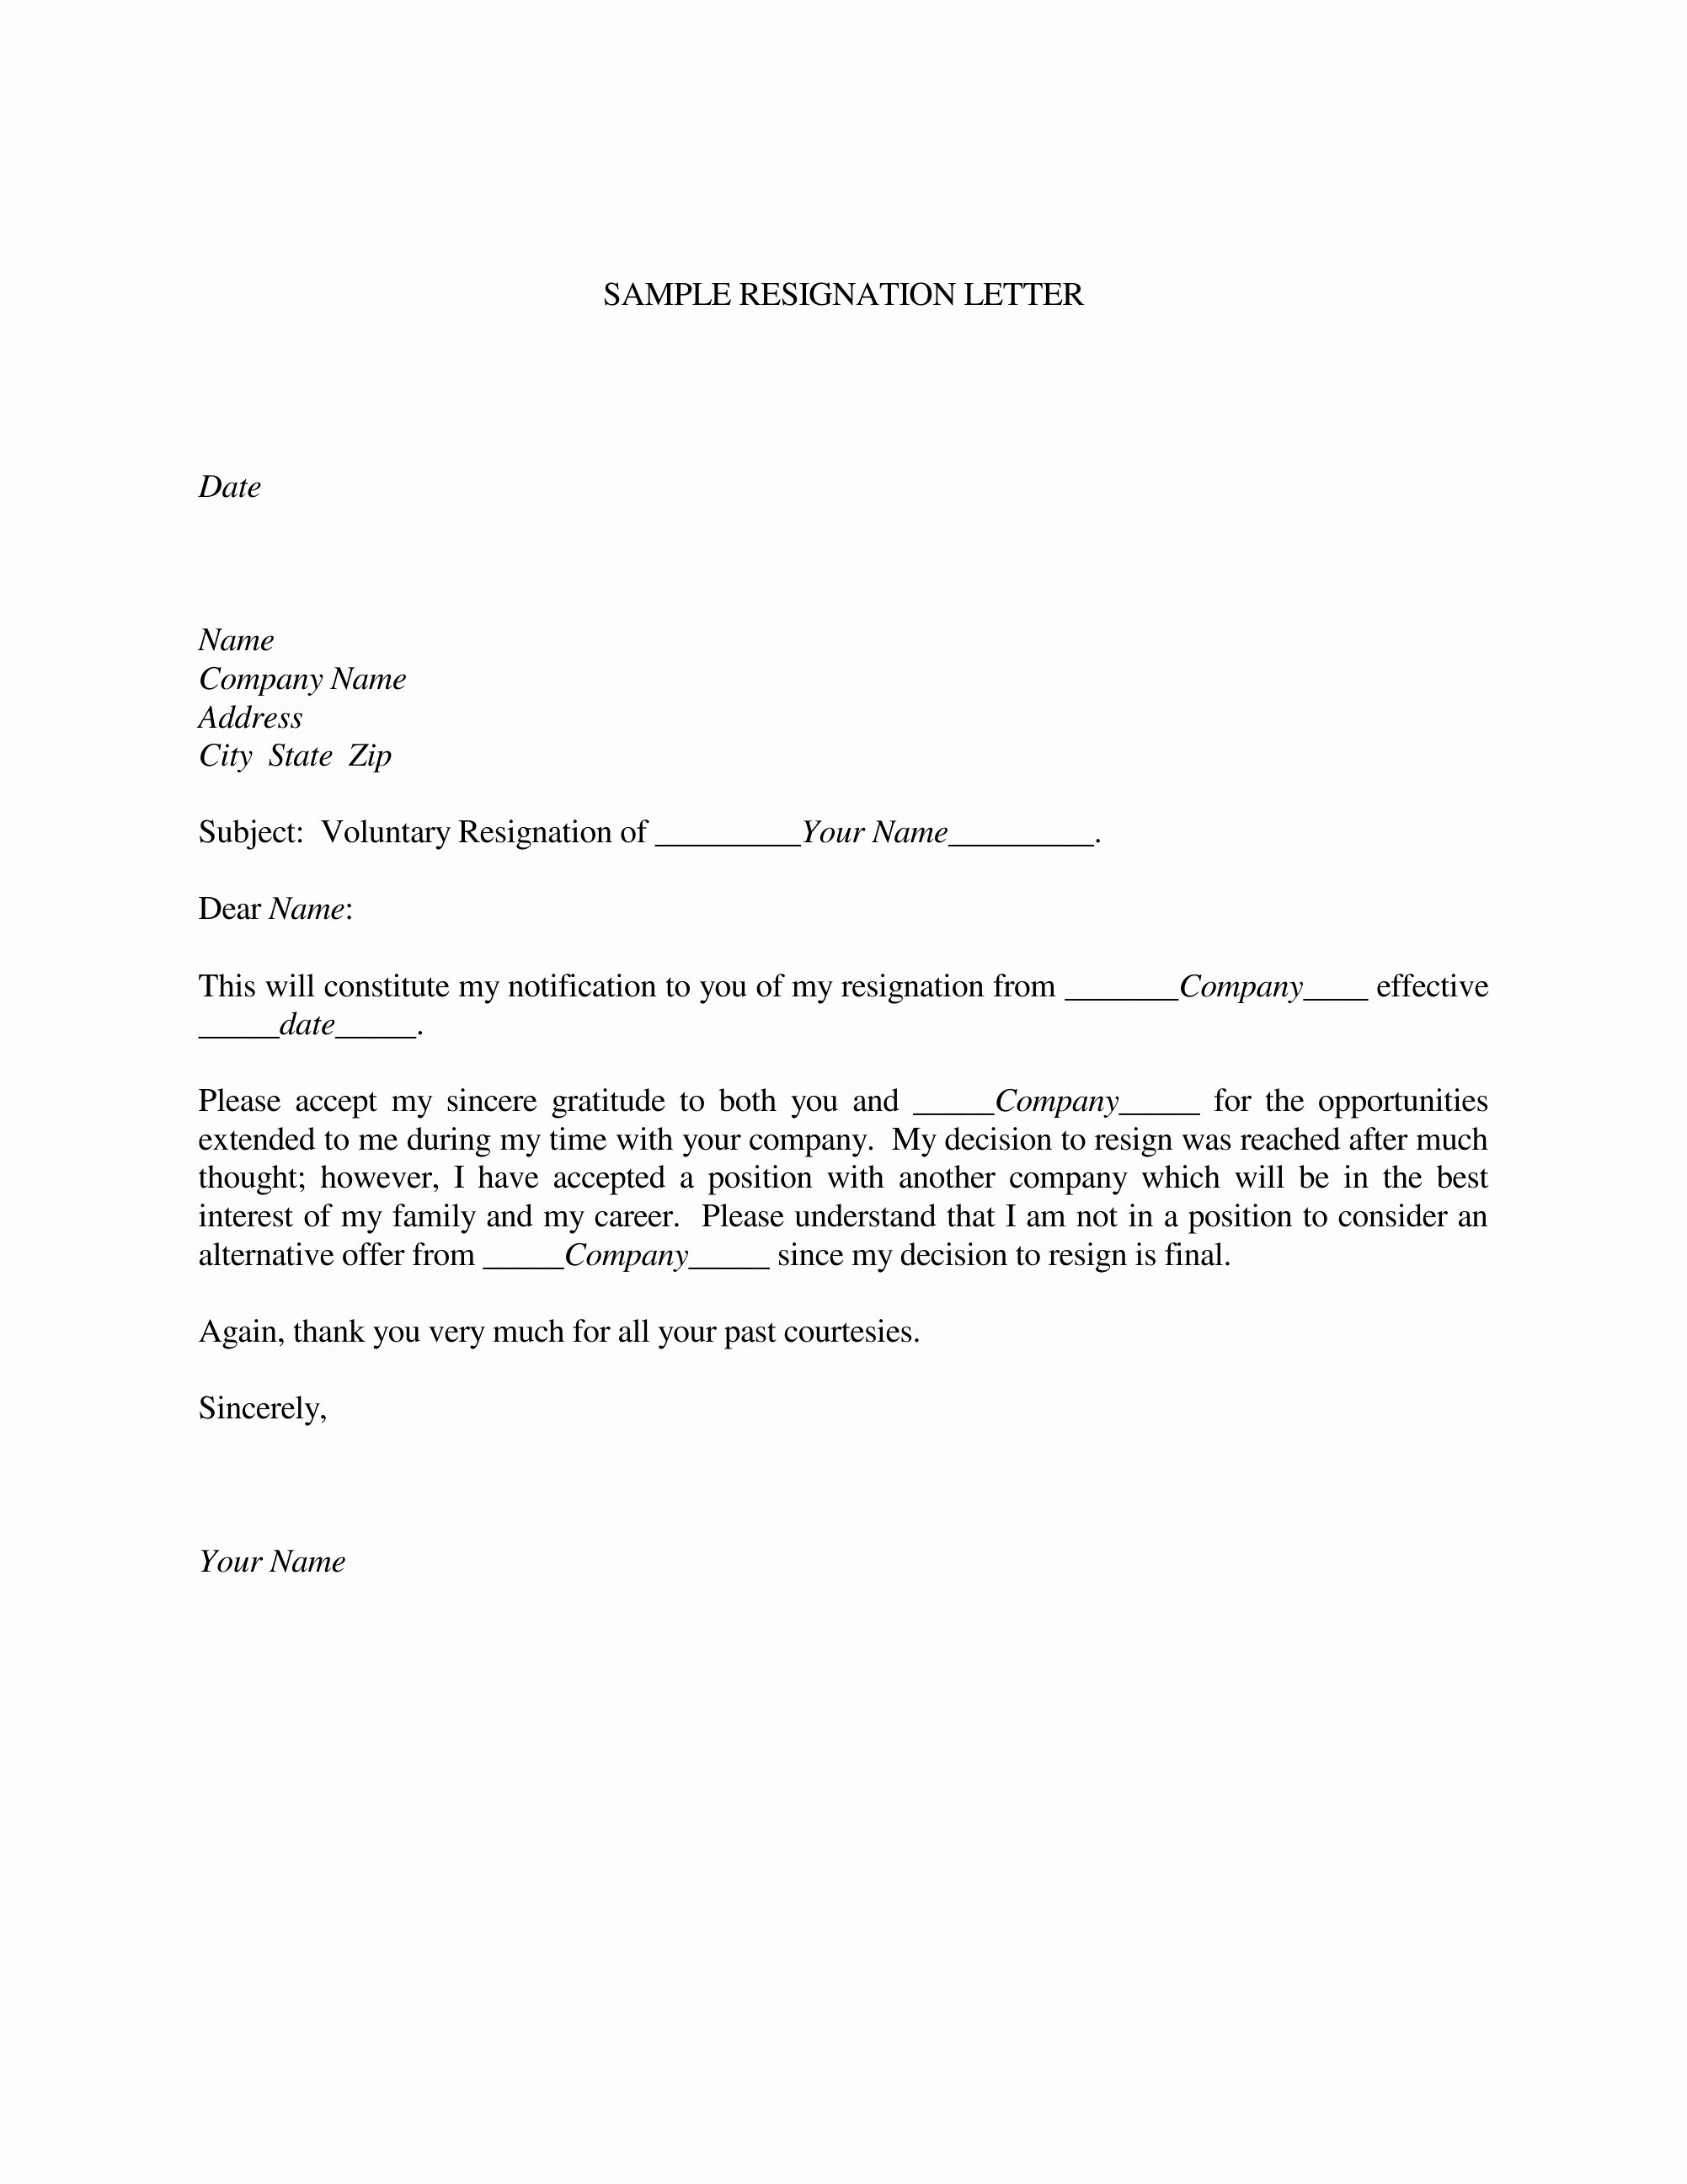 Professional Resignation Letter Template Beautiful Resignation Letter Samples Download Pdf Doc format